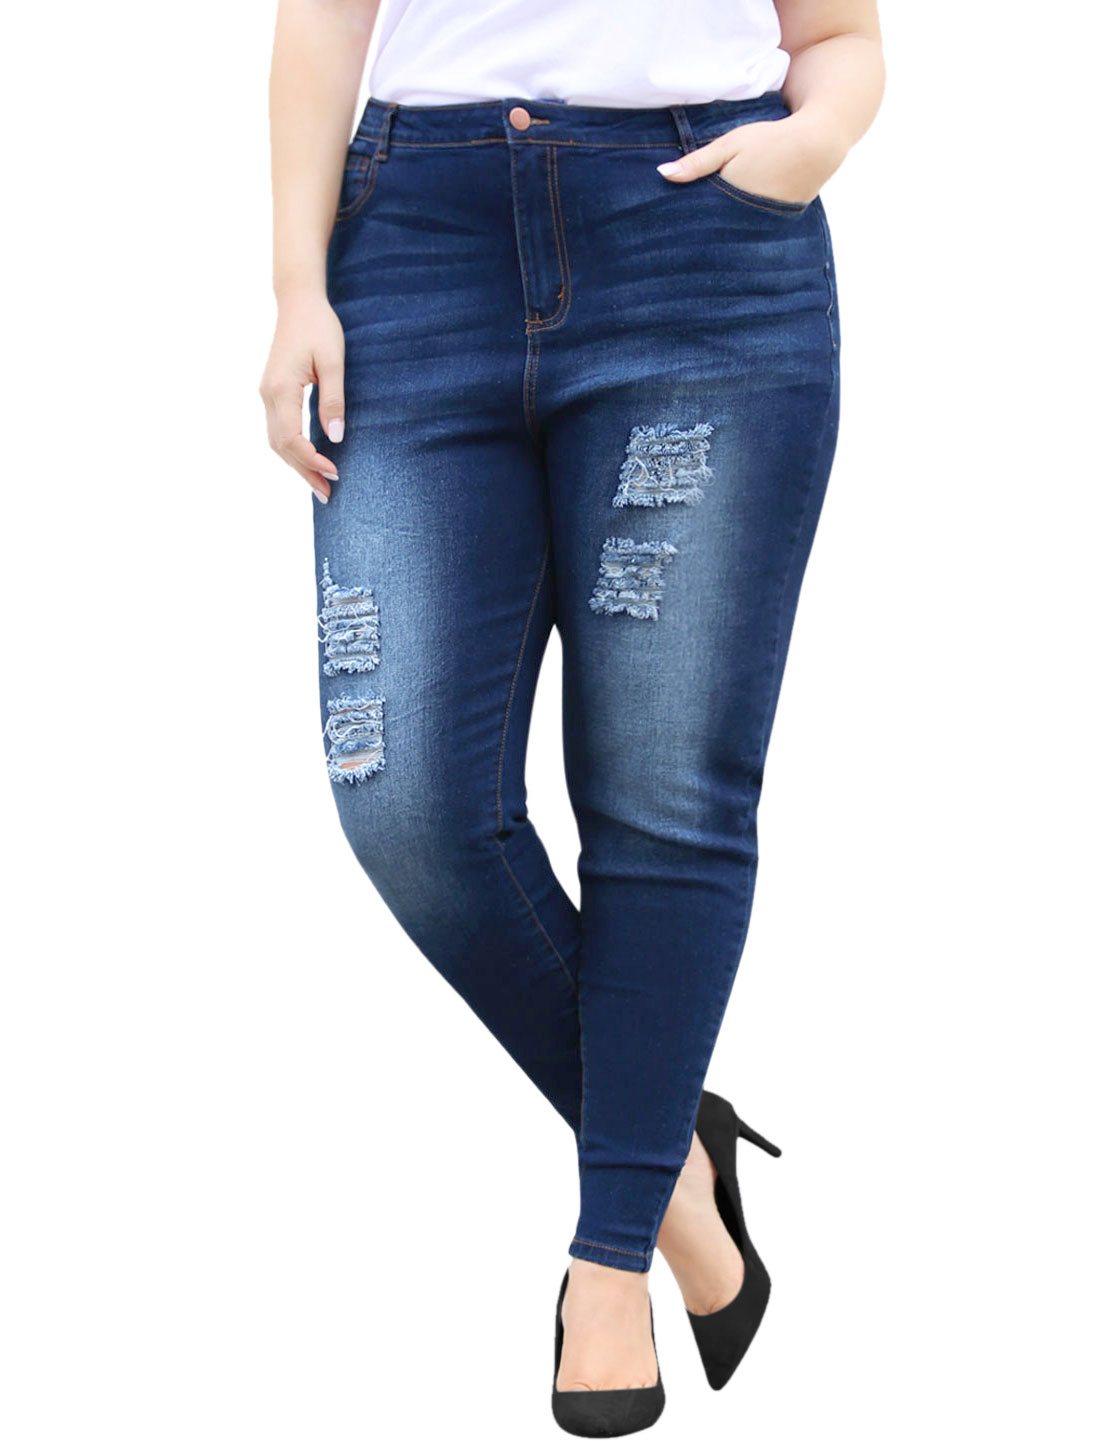 Unique Bargains Women's Plus Size Distressed Mid Rise Washed Skinny Jeans